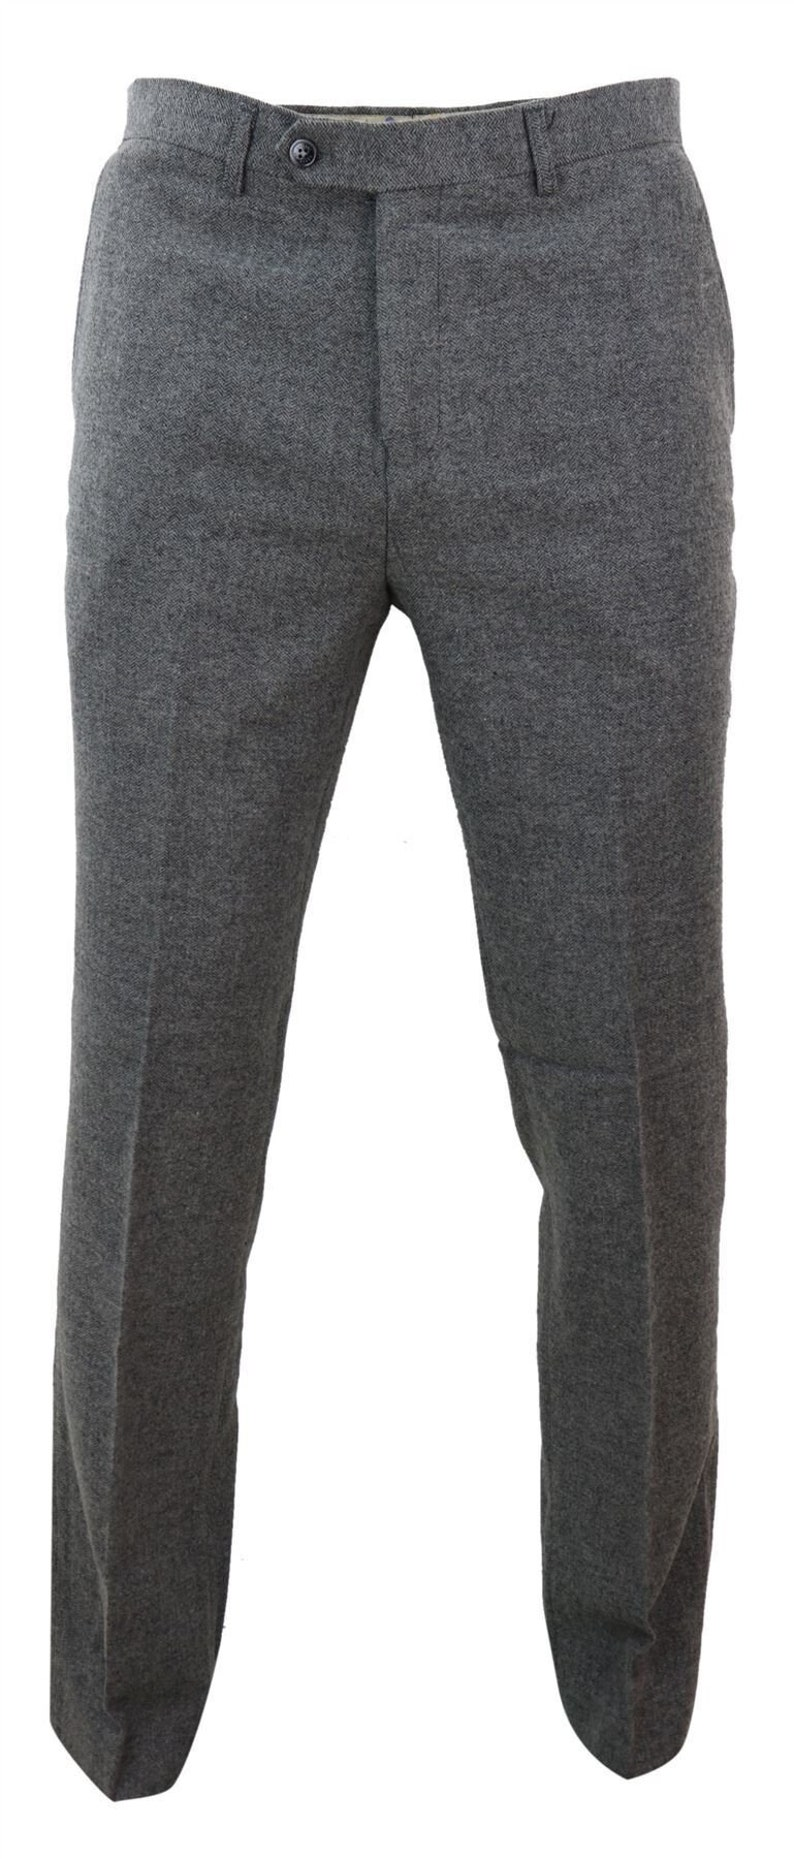 1920s Men's Pants History: Oxford Bags, Plus Four Knickers, Overalls     Mens trousers wool herringbone tweed dark grey formal classic 1920s tailored fit $72.13 AT vintagedancer.com